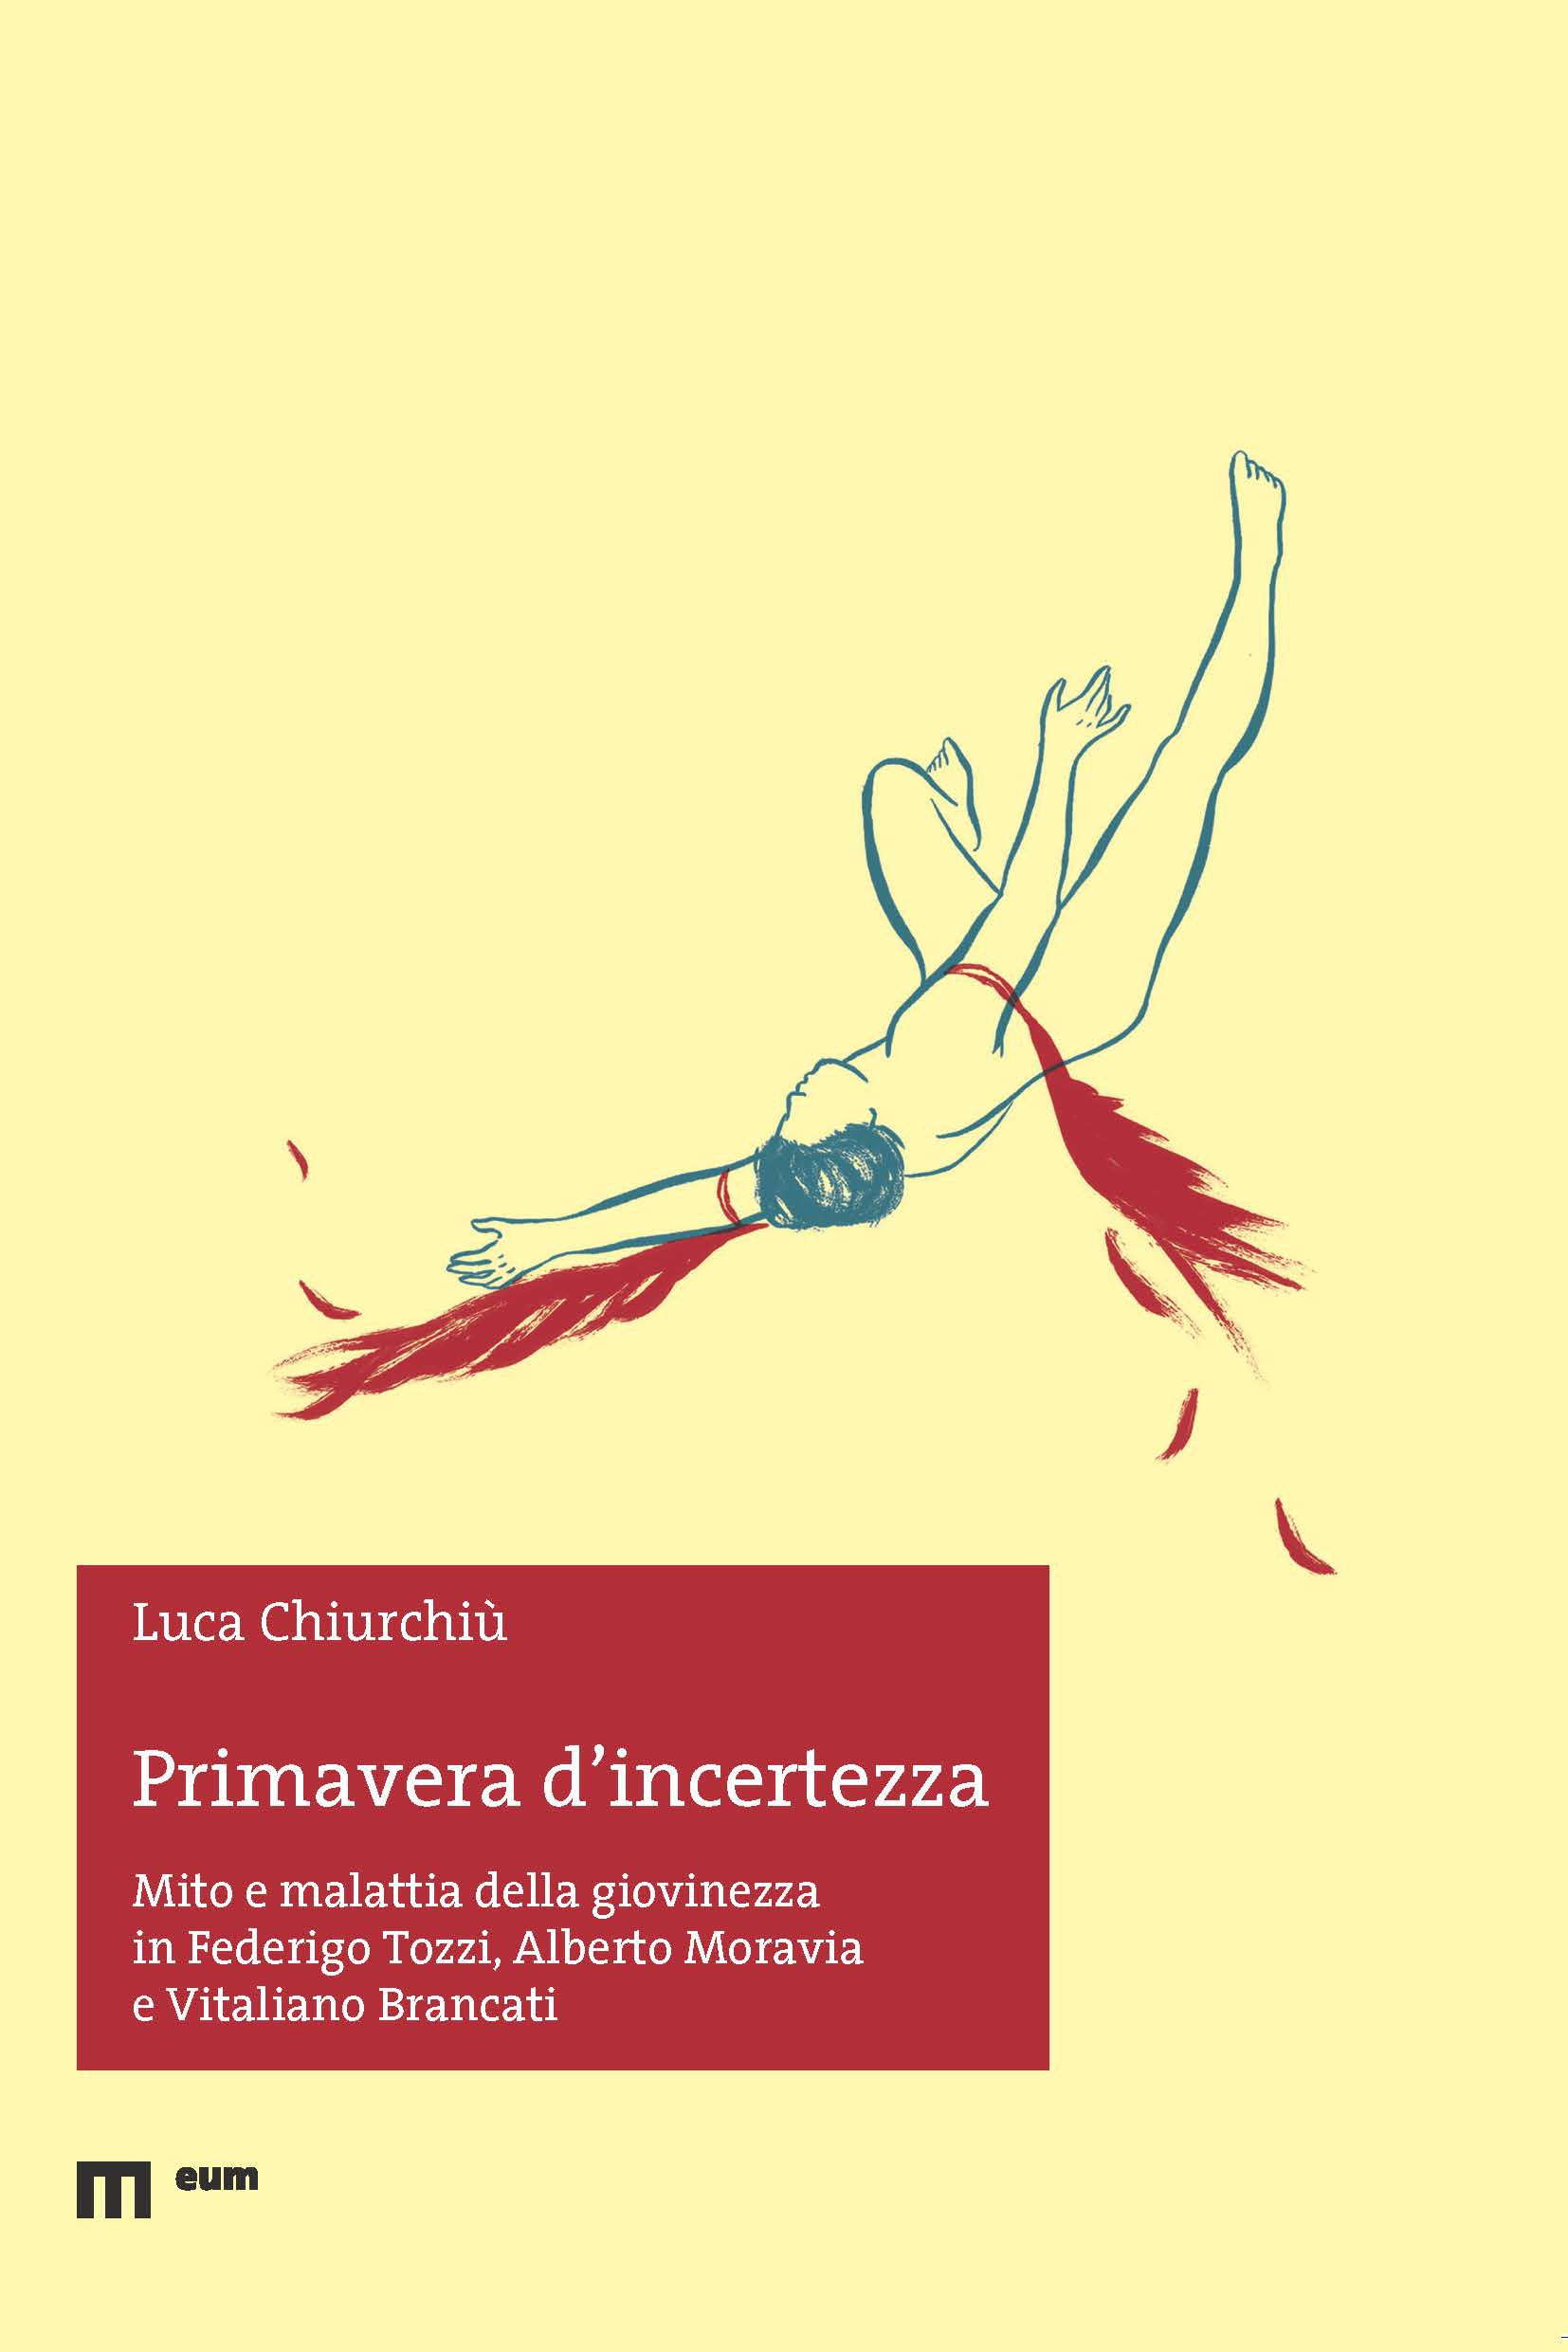 Primavera d'incertezza